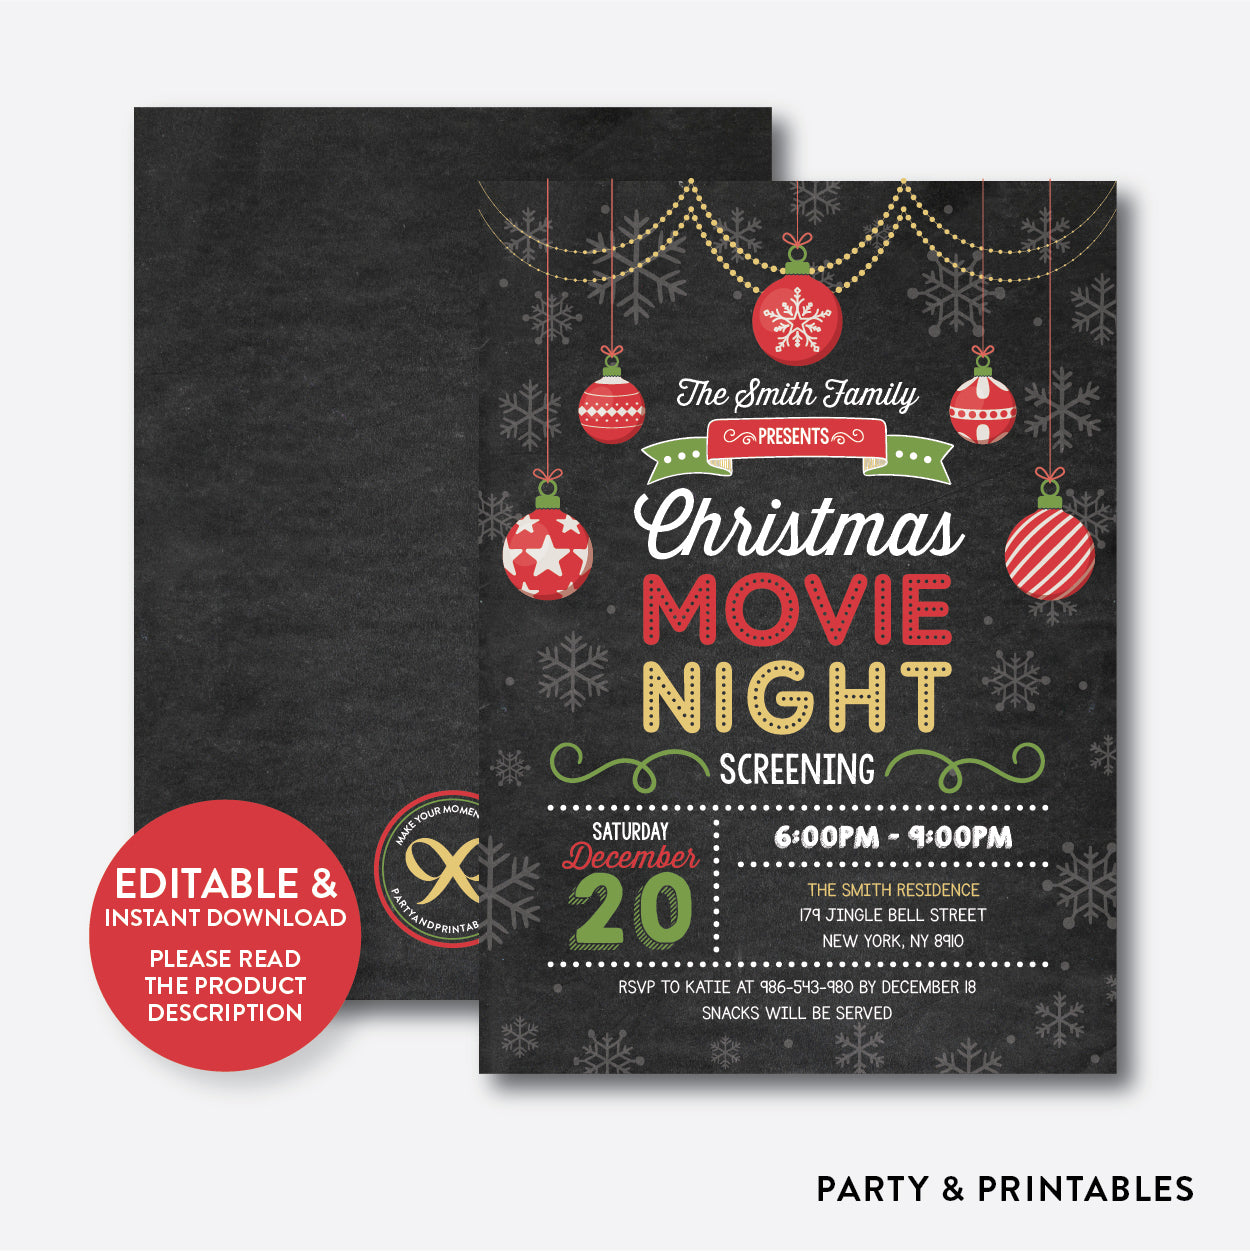 Christmas Movie Night Invitation / Editable / Instant Download (CHI.18), invitation - Party and Printables